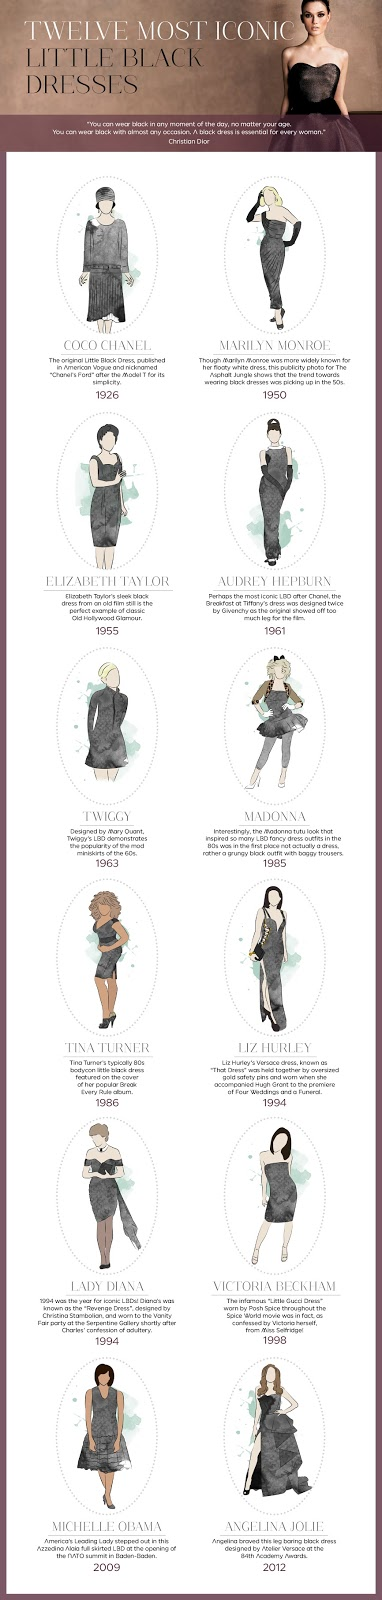 LBD infographic by Coast - the history of the iconic little black dress - fashion & style blog